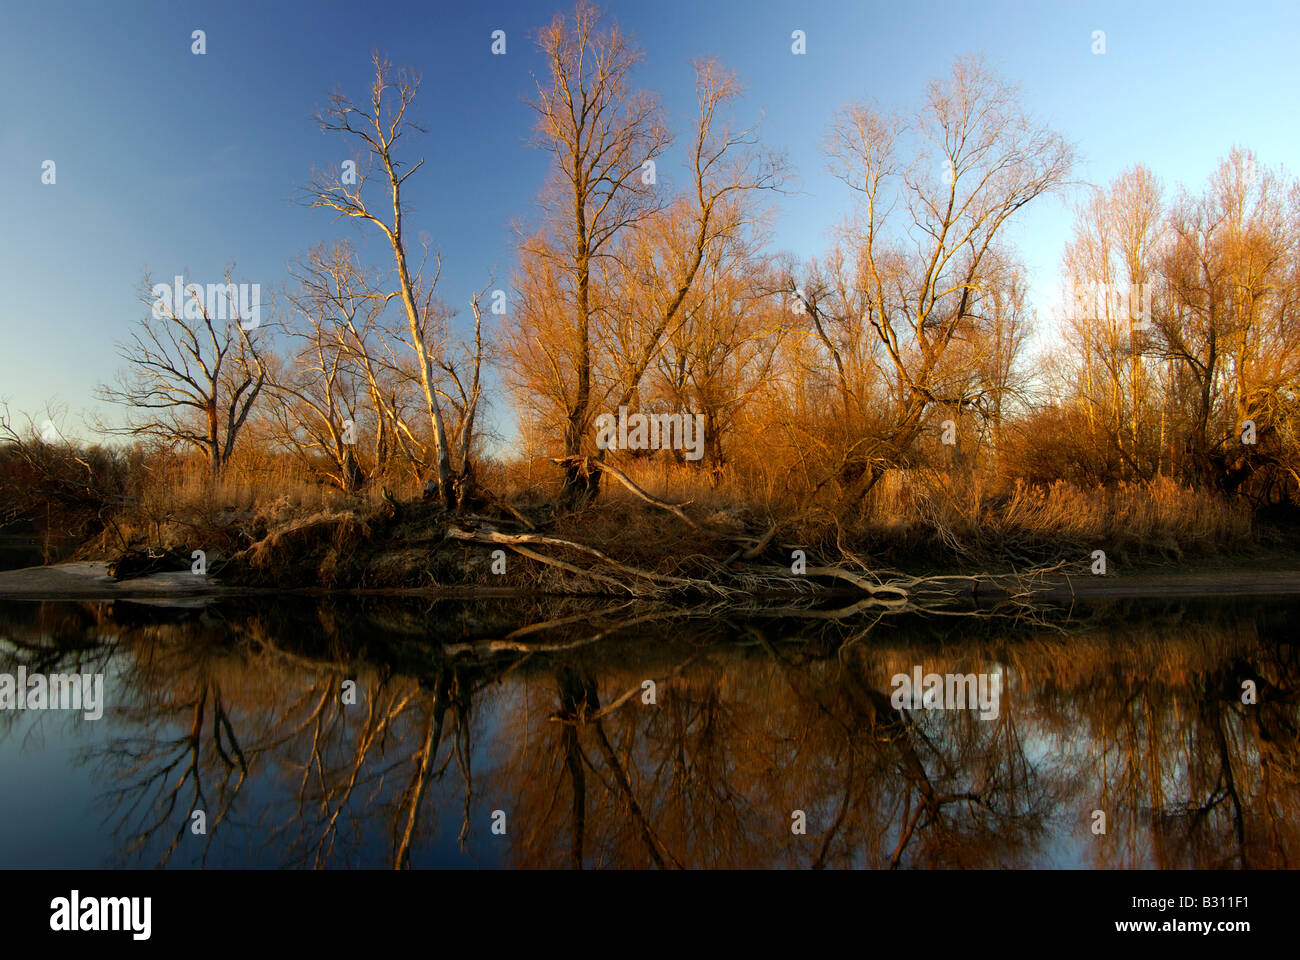 island on the Old Rhine near Ketsch Germany in wnter at sunset with trees reflected in the calm water - Stock Image